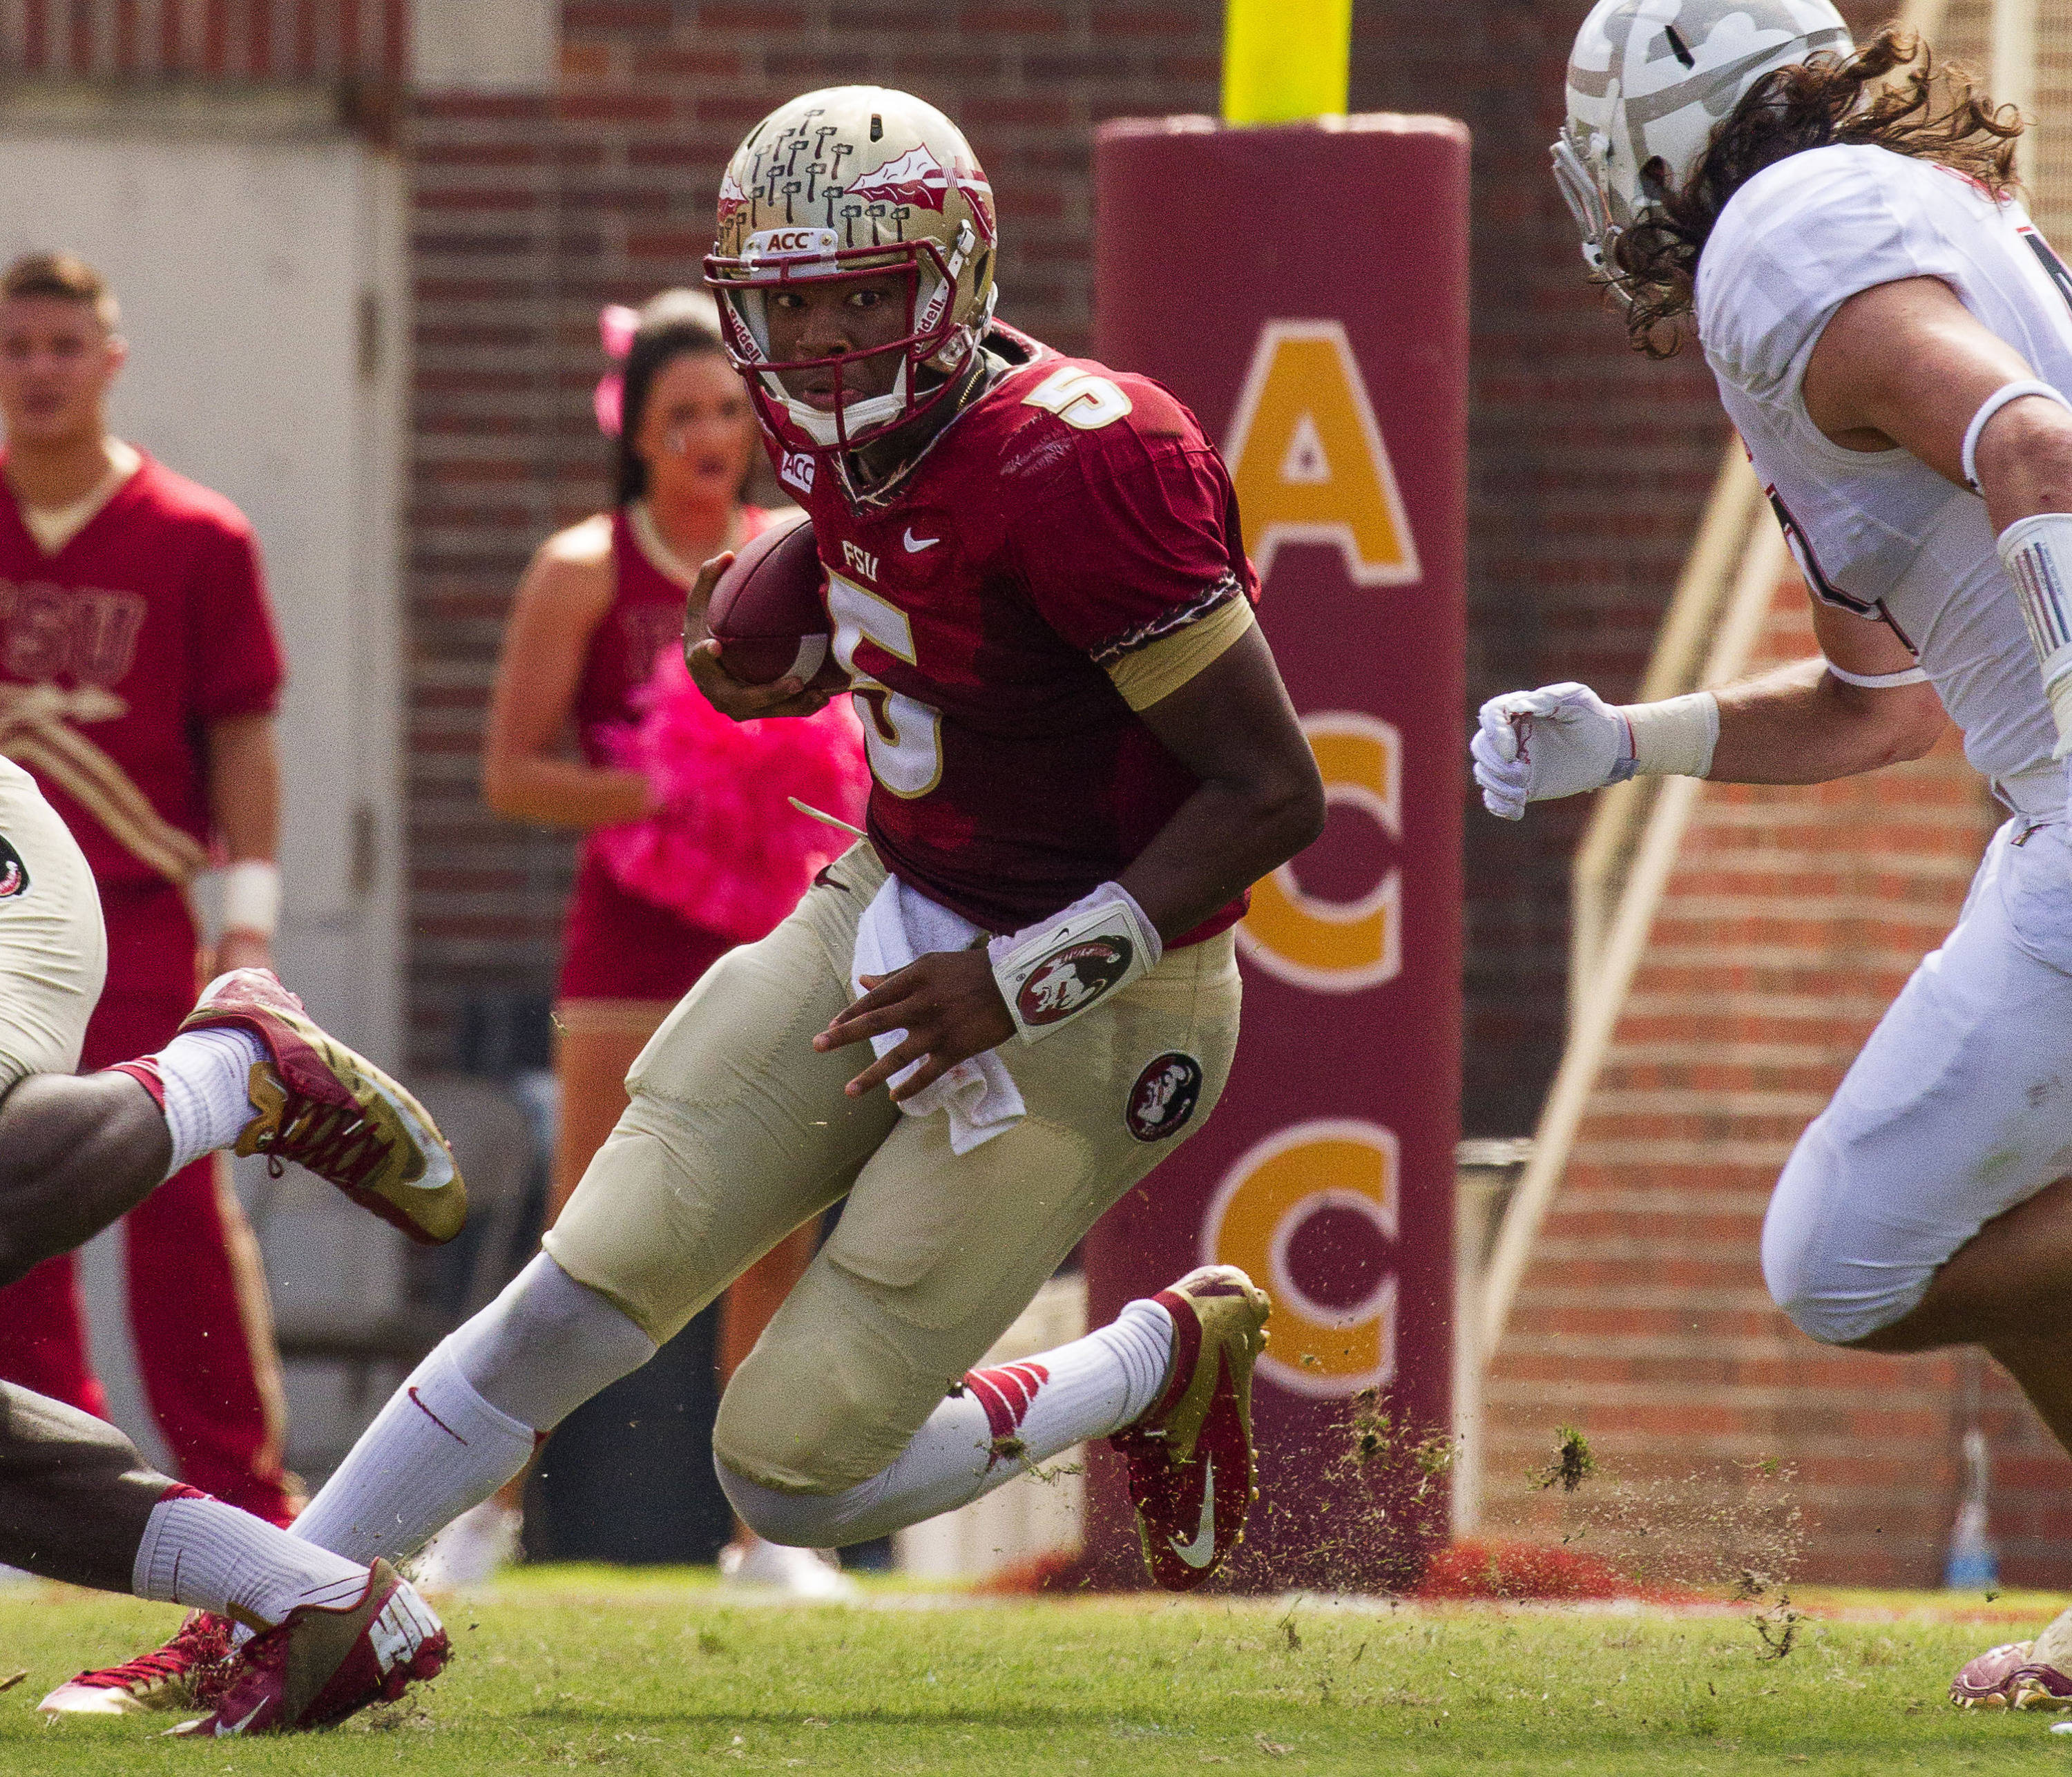 Jameis Winston (5) runs the ball during FSU Football's 63-0 shutout of Maryland on Saturday, October 5, 2013 in Tallahassee, Fla.